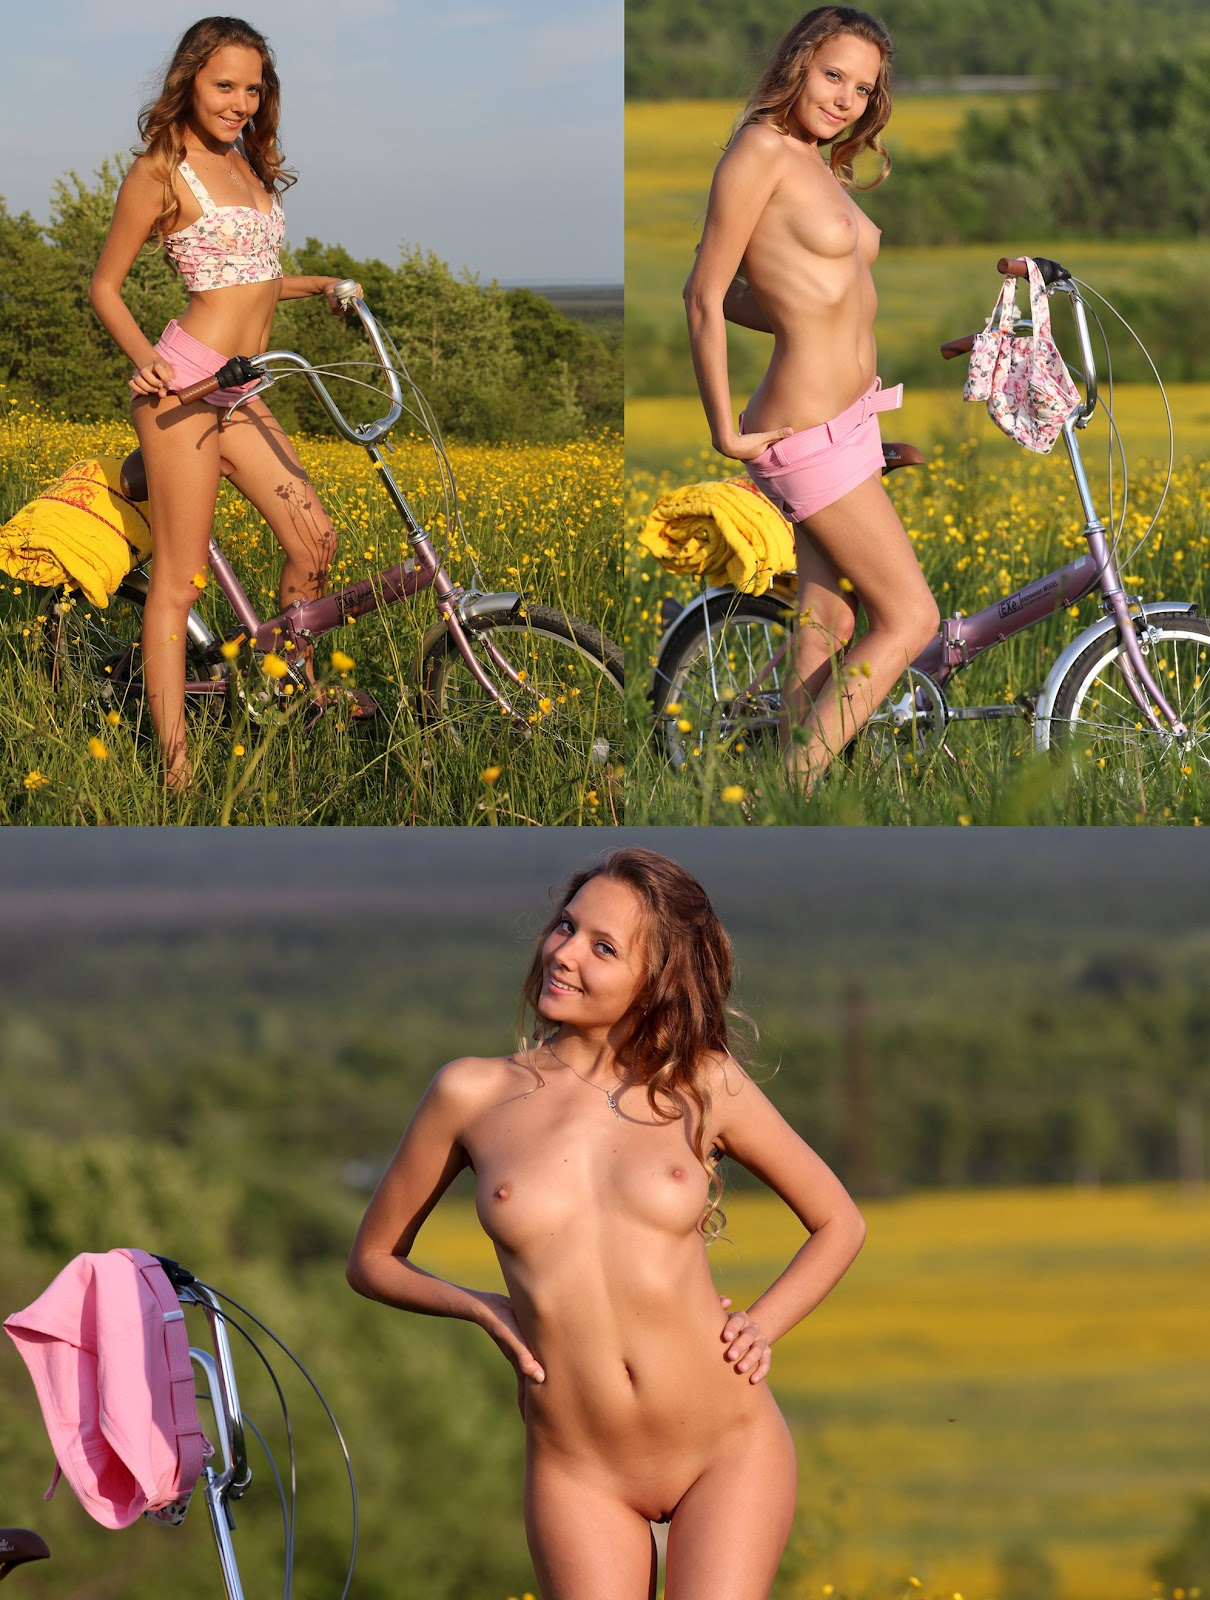 Nude bike girl